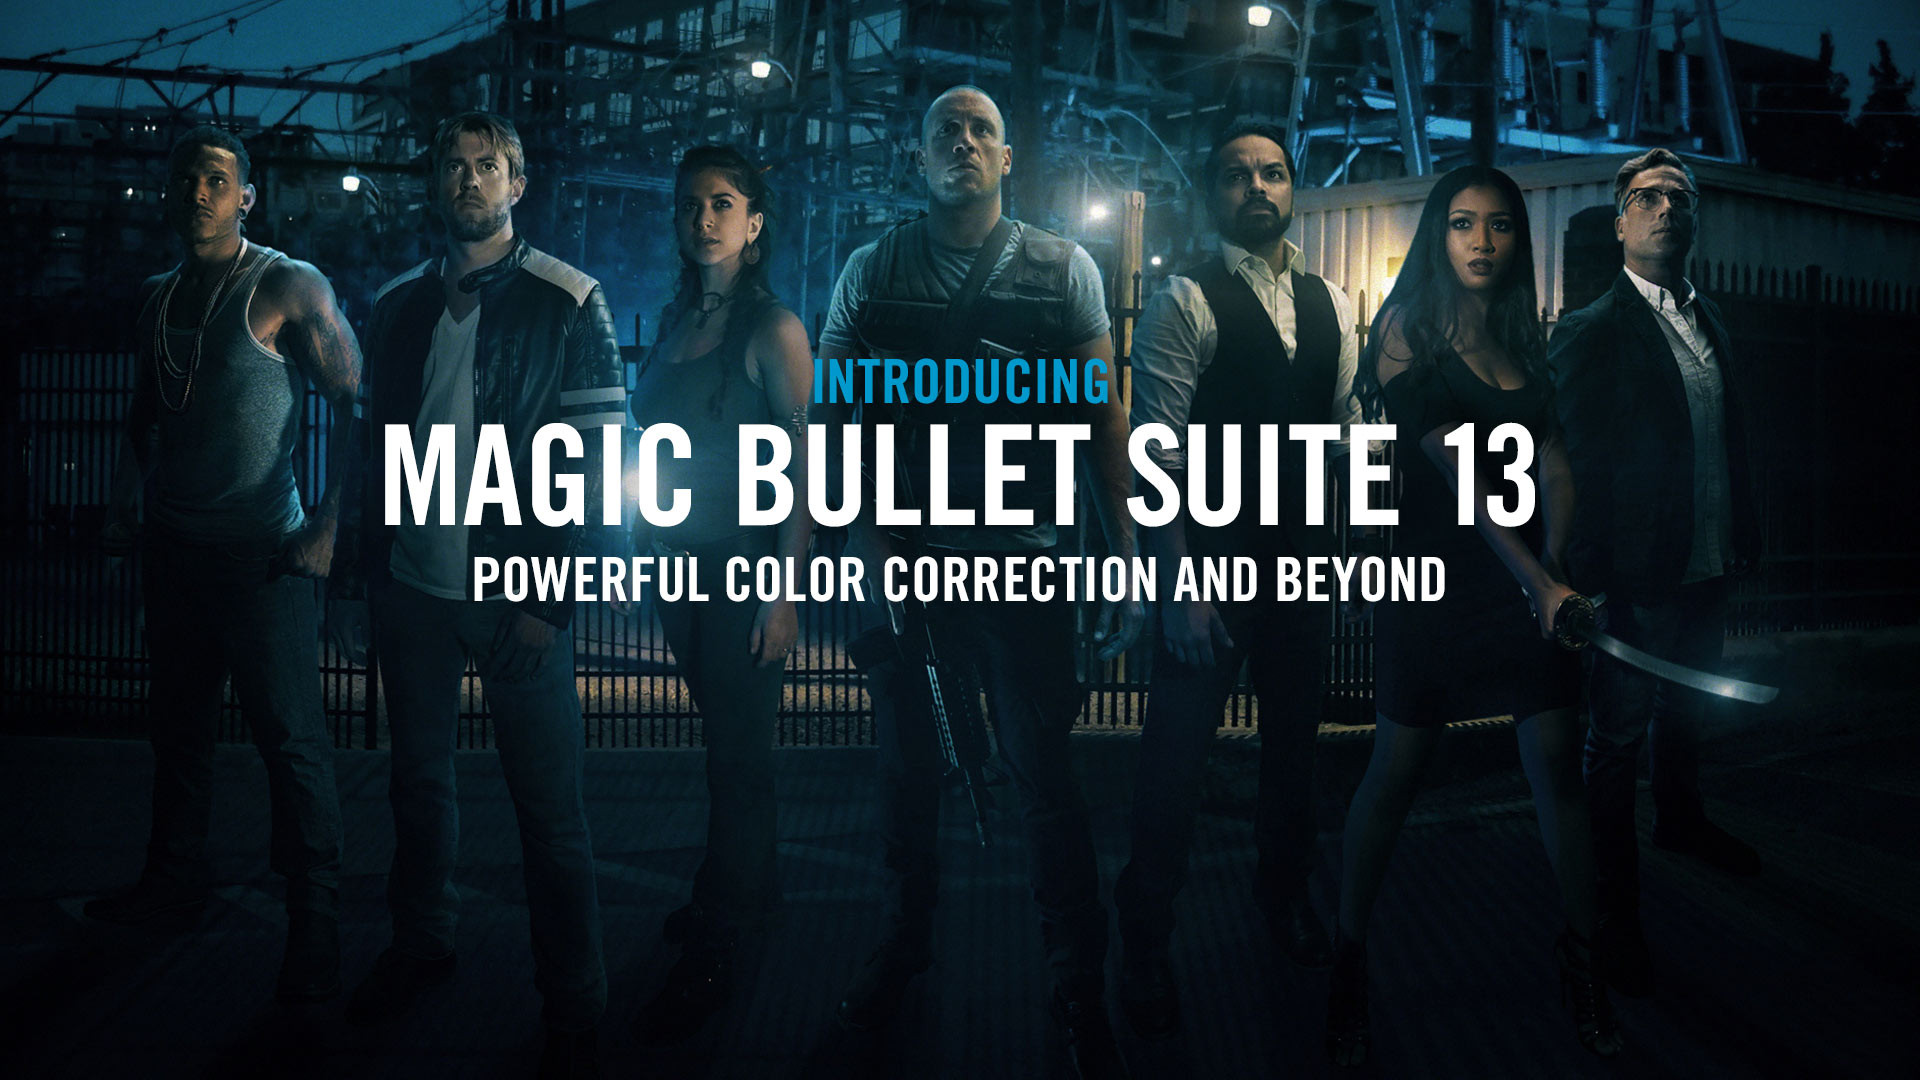 Bullet suite 11 mac torrent download.